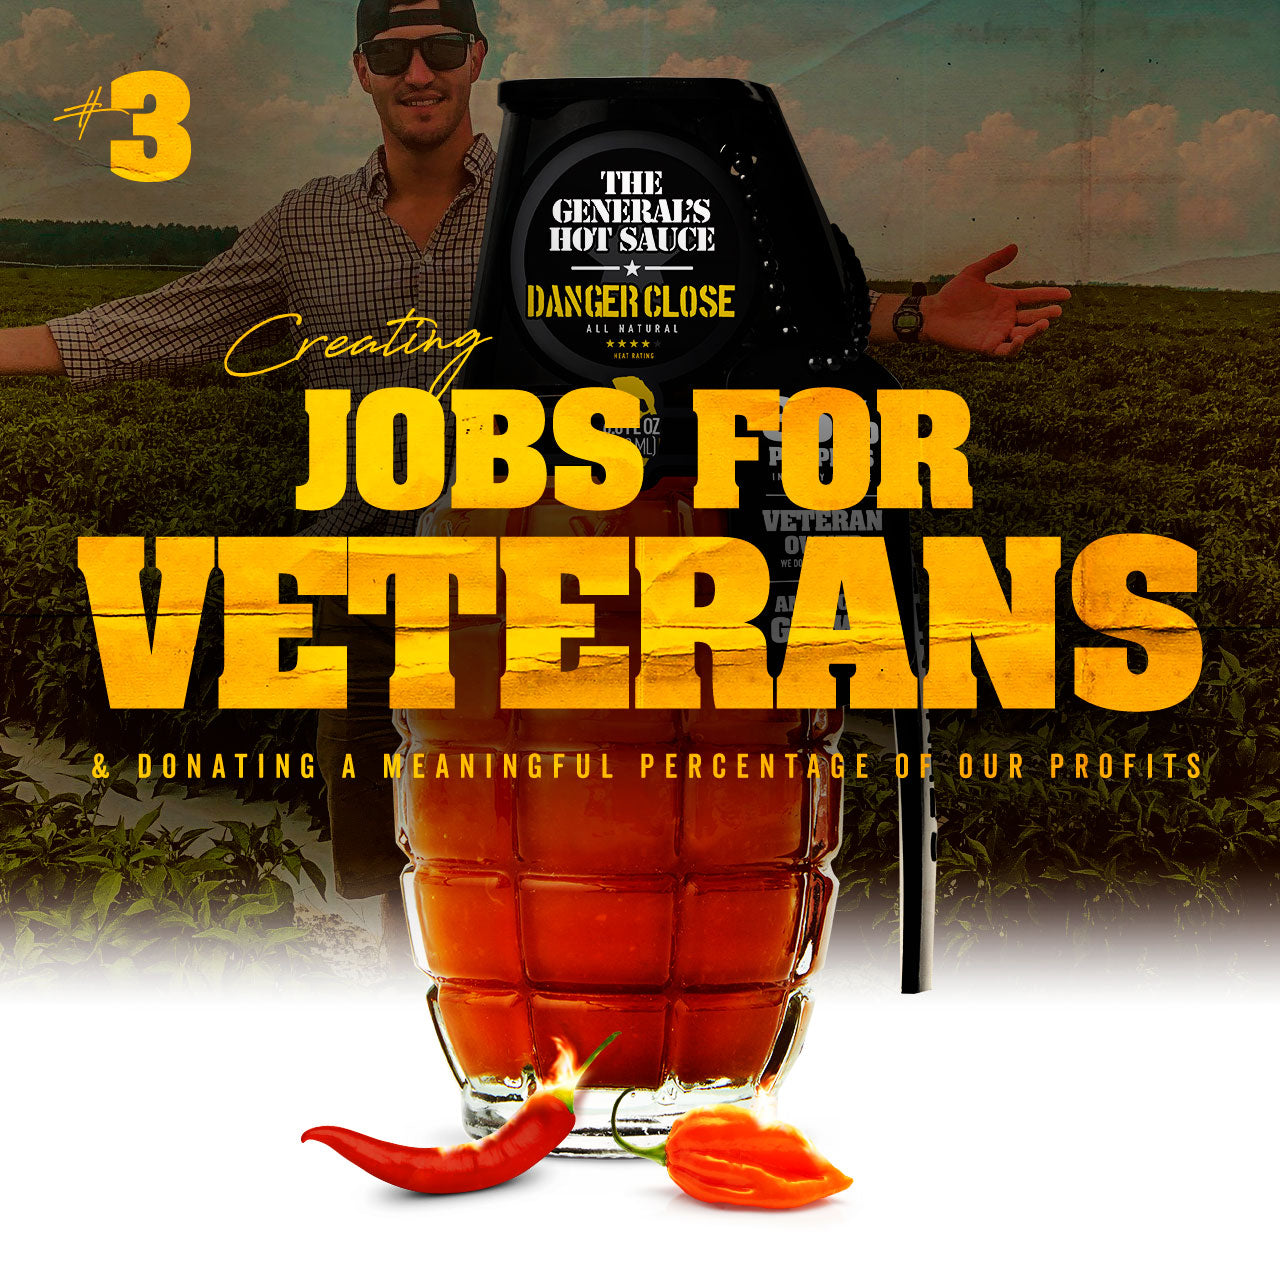 Serve the greater good by creating jobs for Veterans.